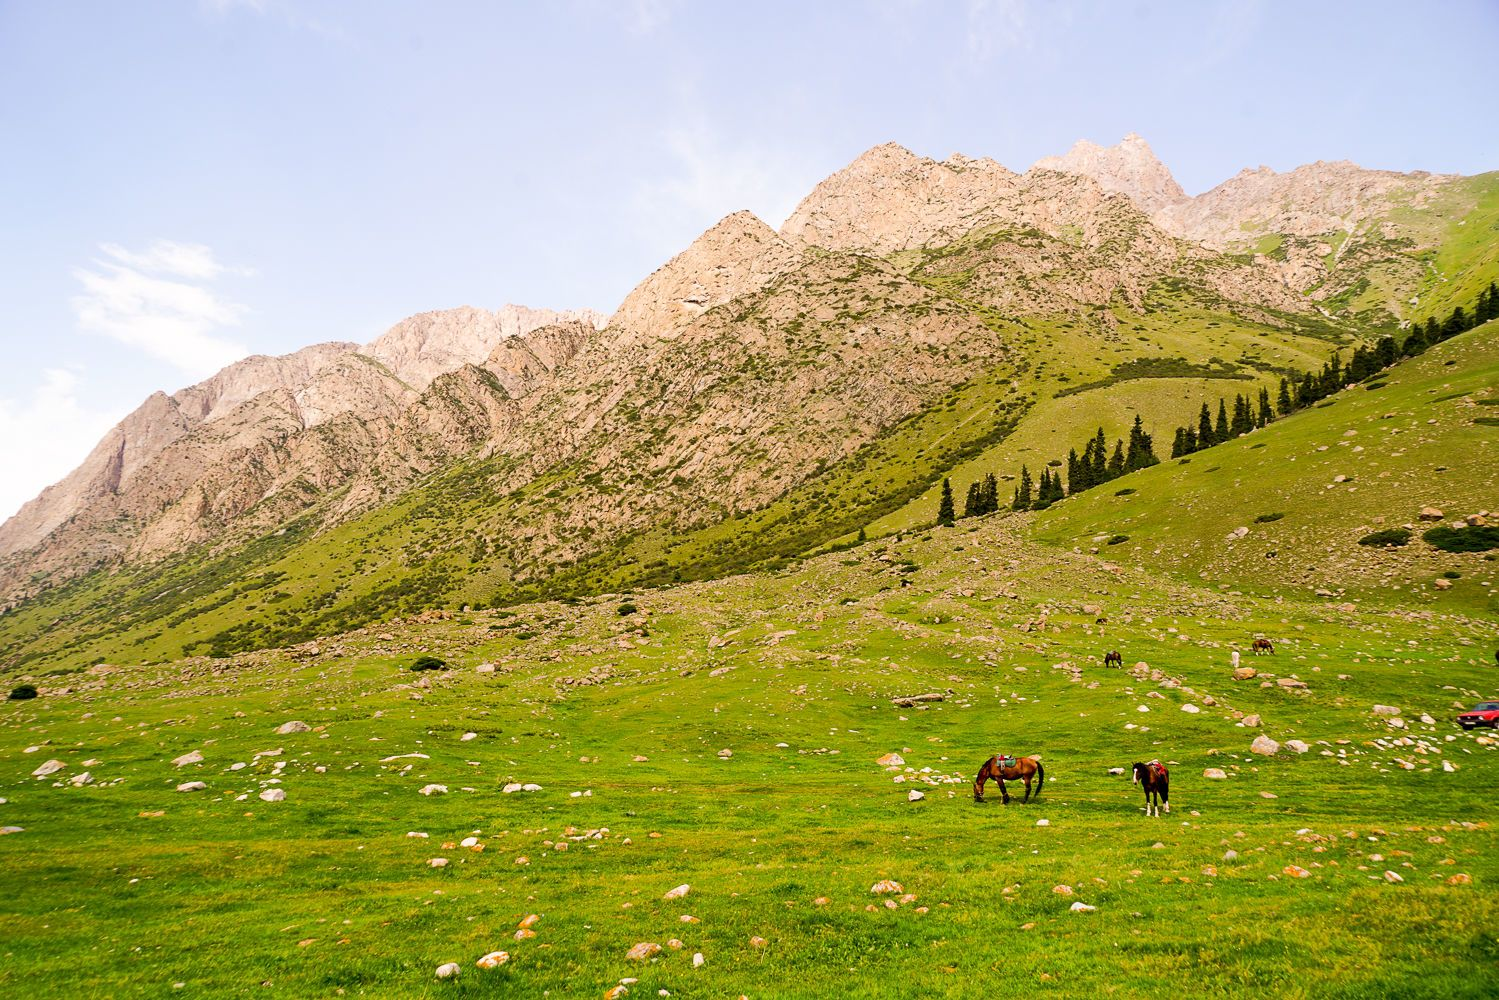 Central Asia, Kyrgyzstan, Tian Shan mountains